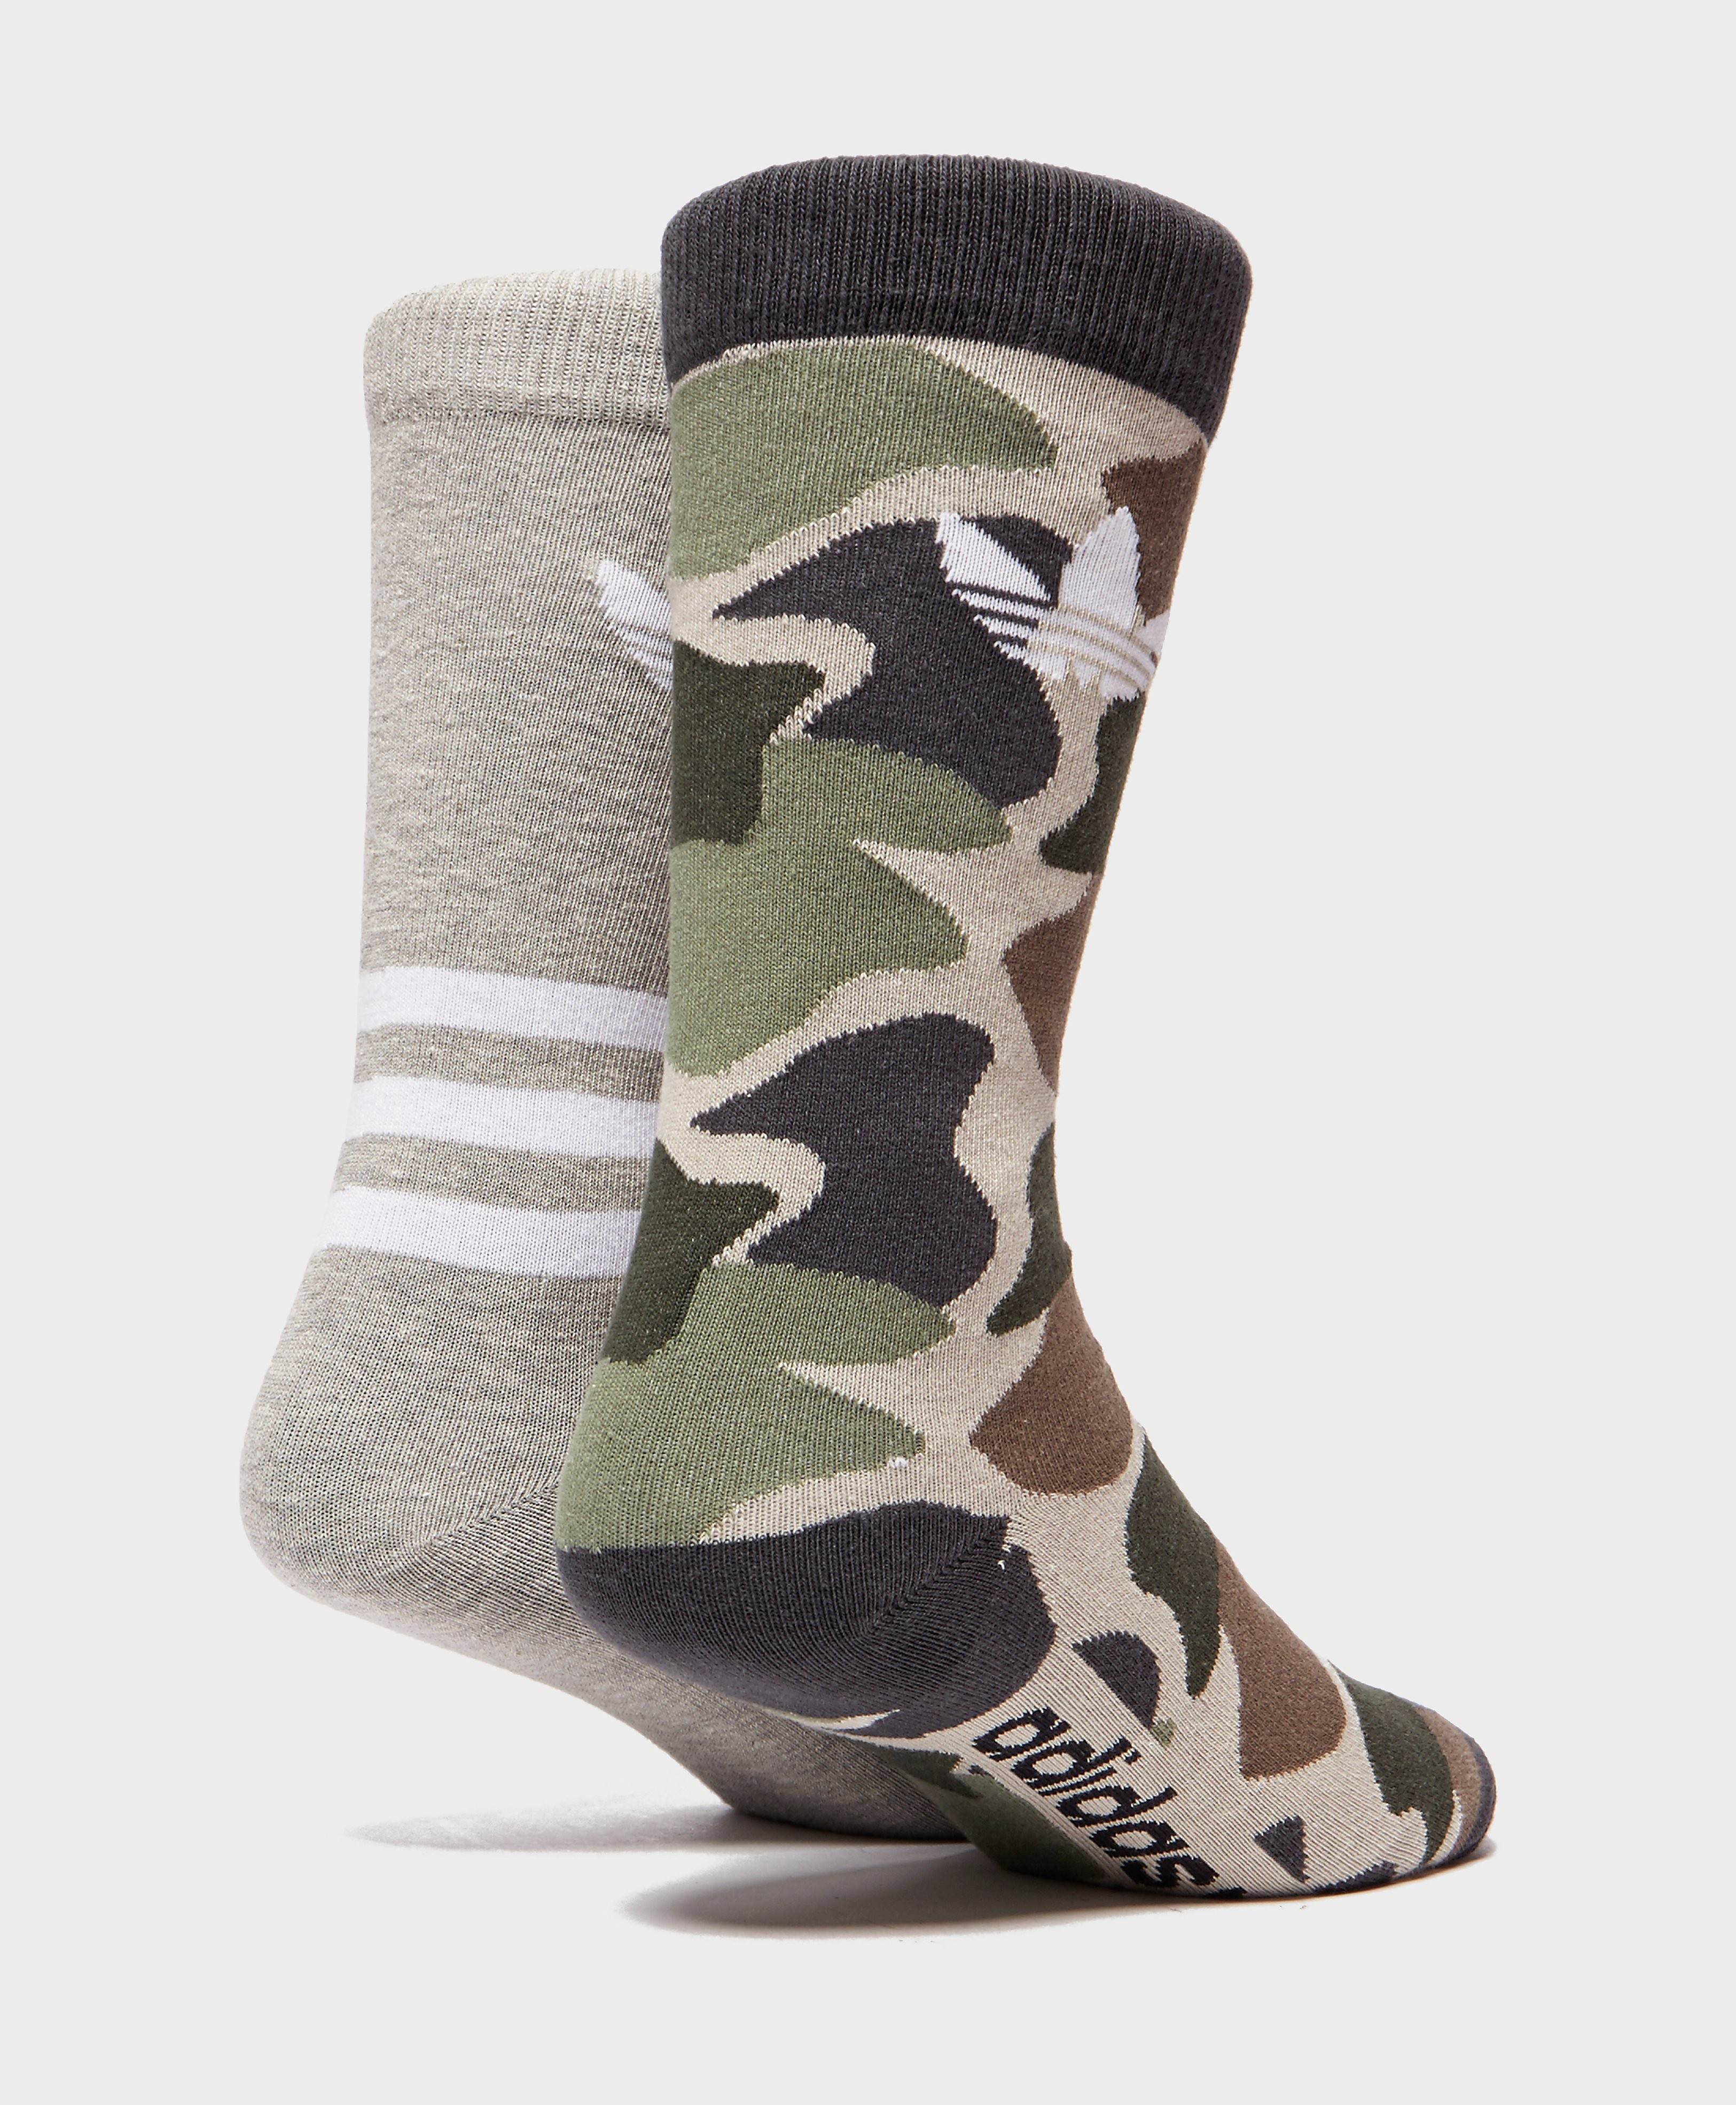 adidas Originals 2-Pack Camouflage Socks